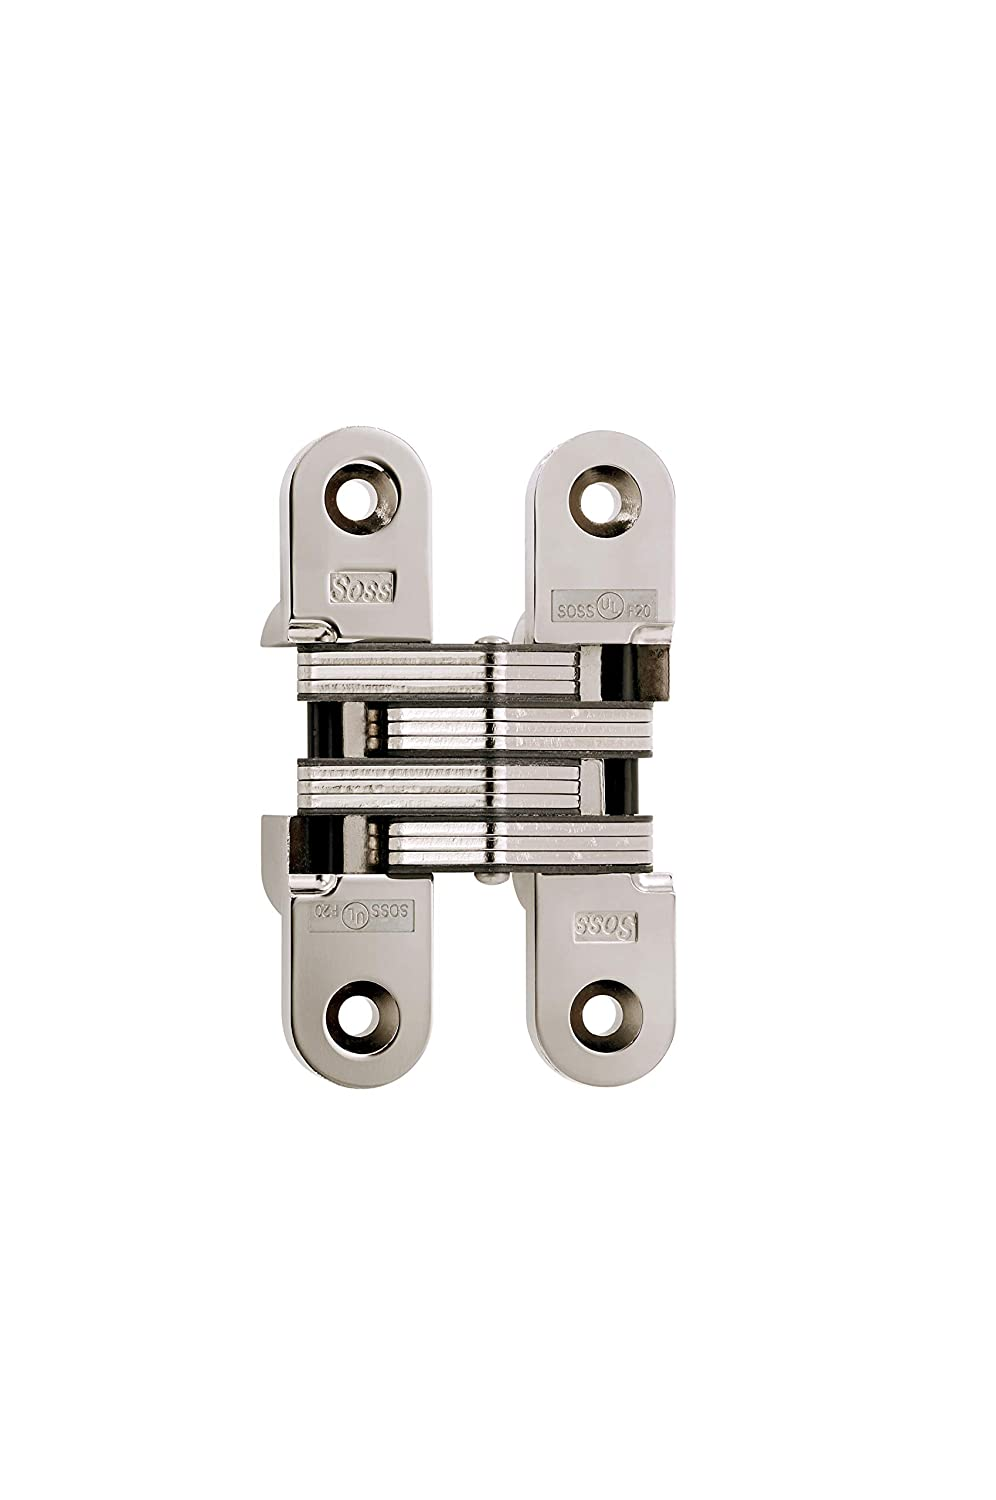 SOSS 216 Zinc Invisible Hinge with Holes for Wood or Metal Applications, Bright Nickel Exterior Finish, 20 Min FR